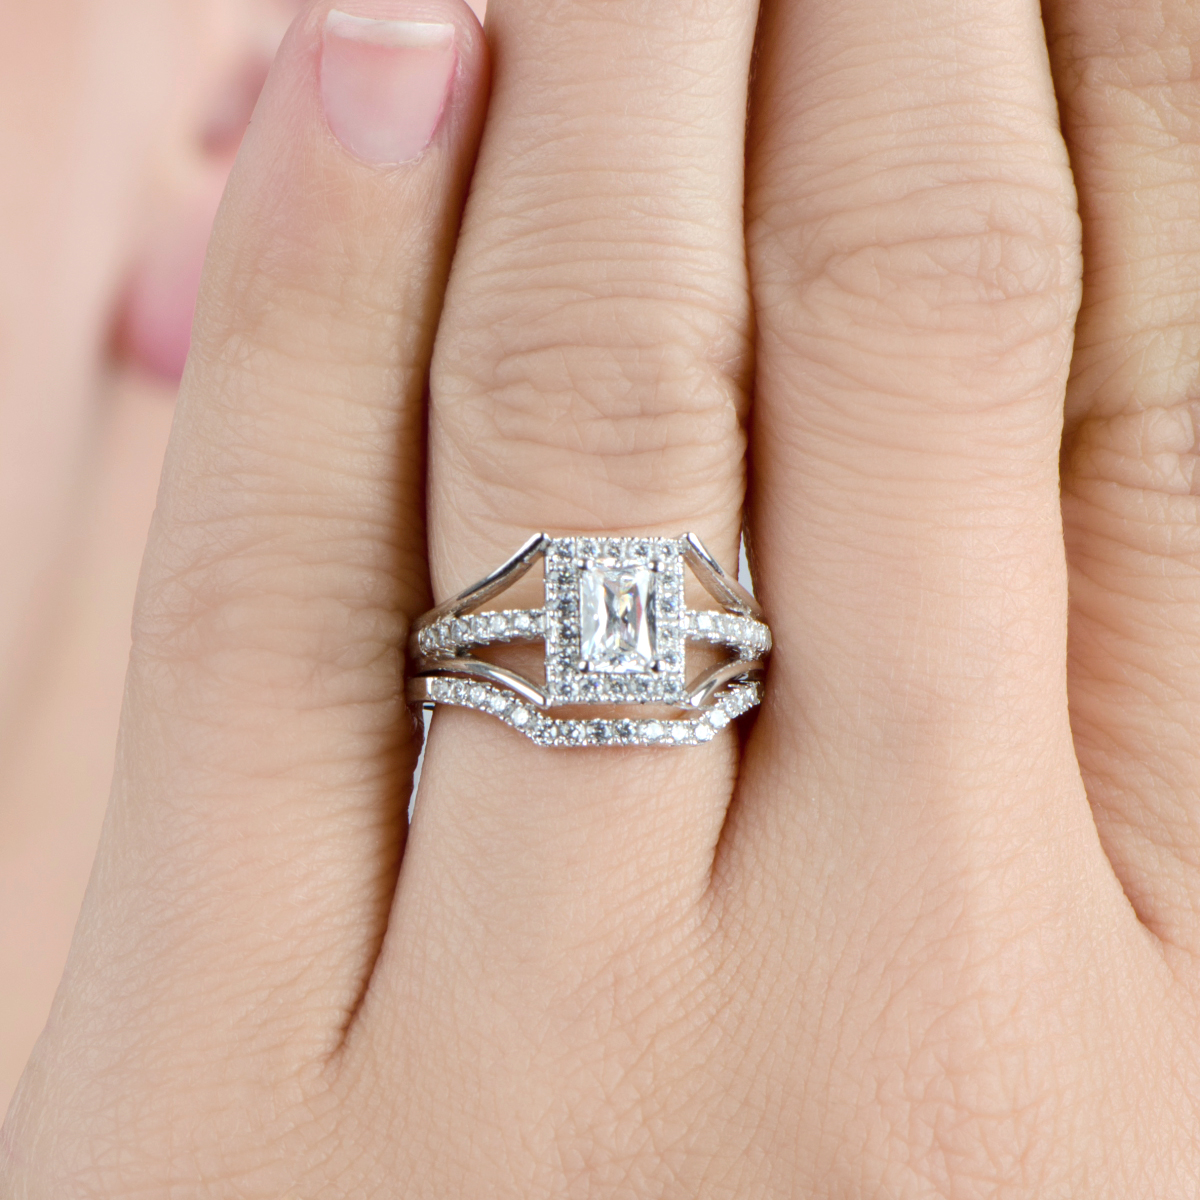 peppins halo emerald cut cz wedding ring set - Halo Wedding Ring Set